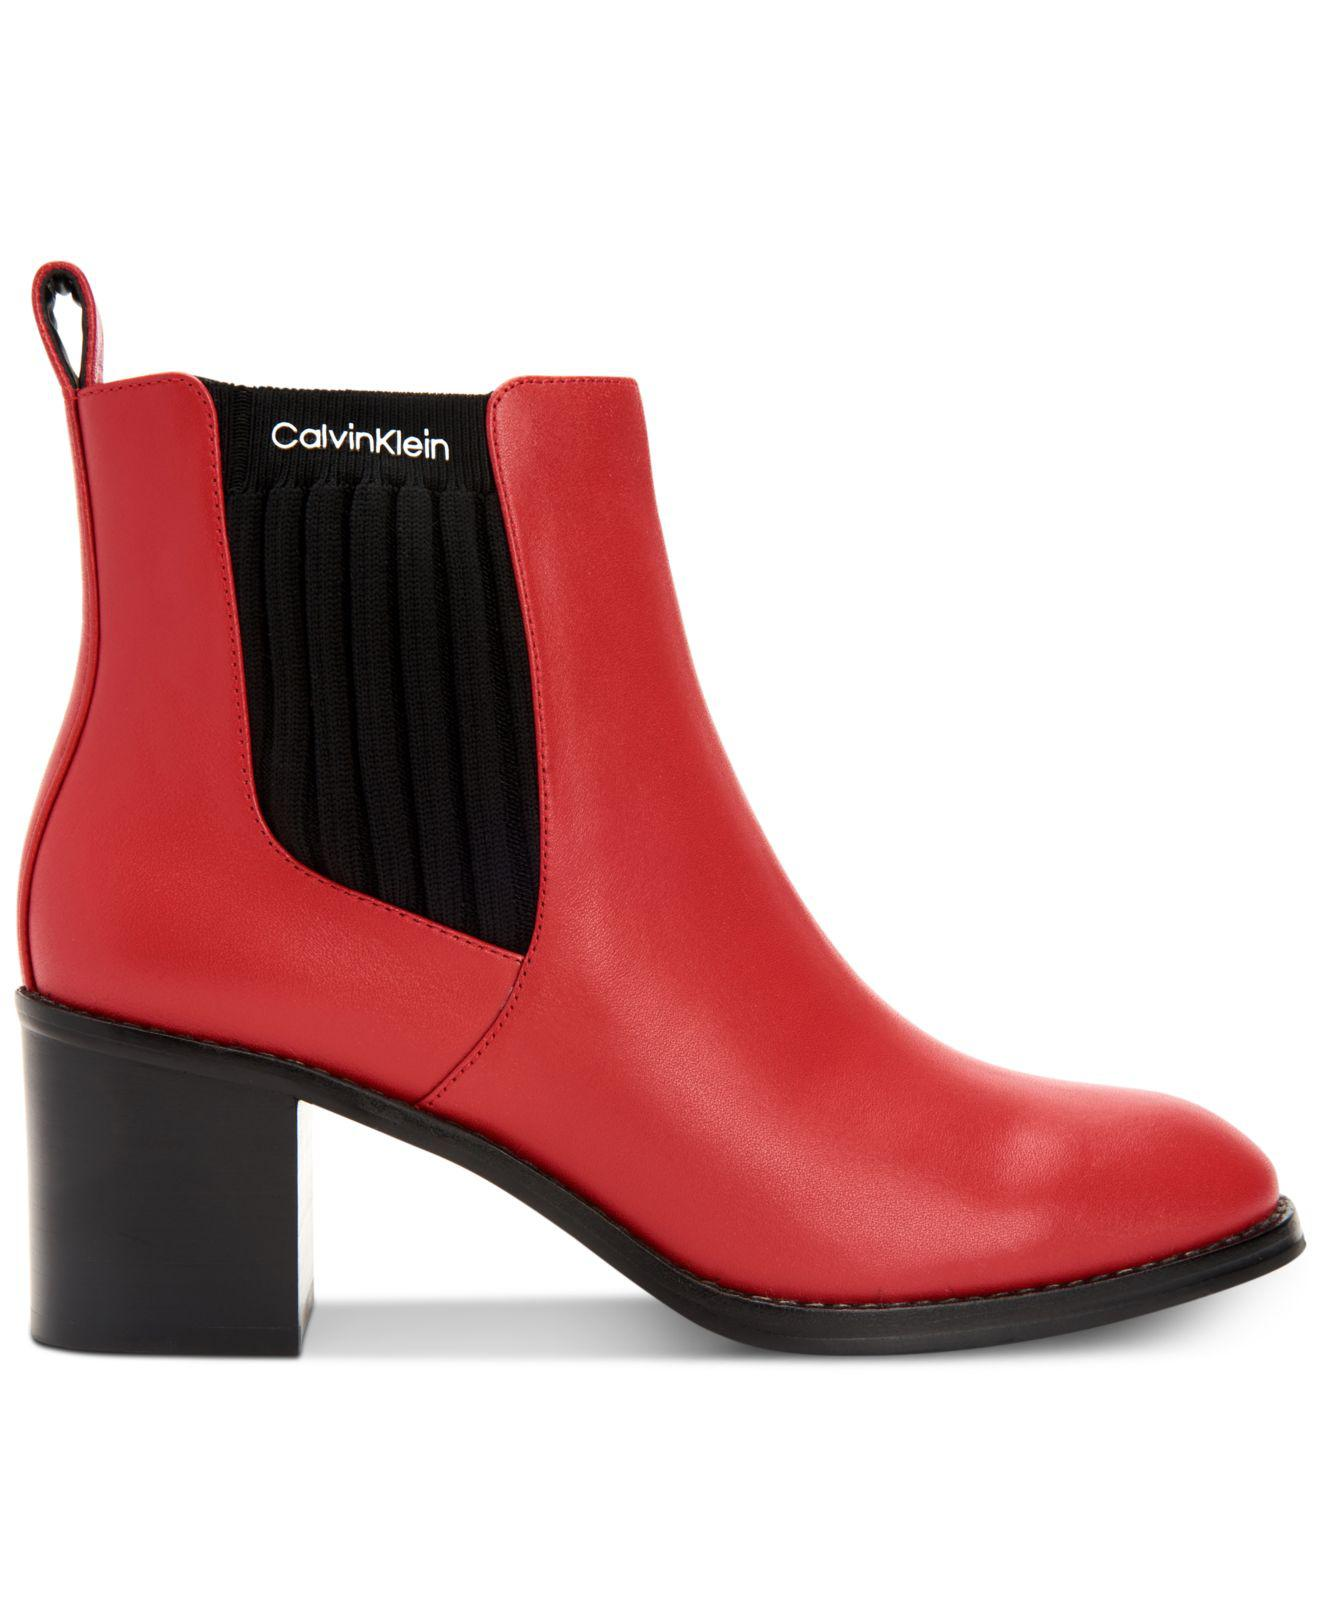 1e84a0d7eac Lyst - Calvin Klein Perron Booties in Red